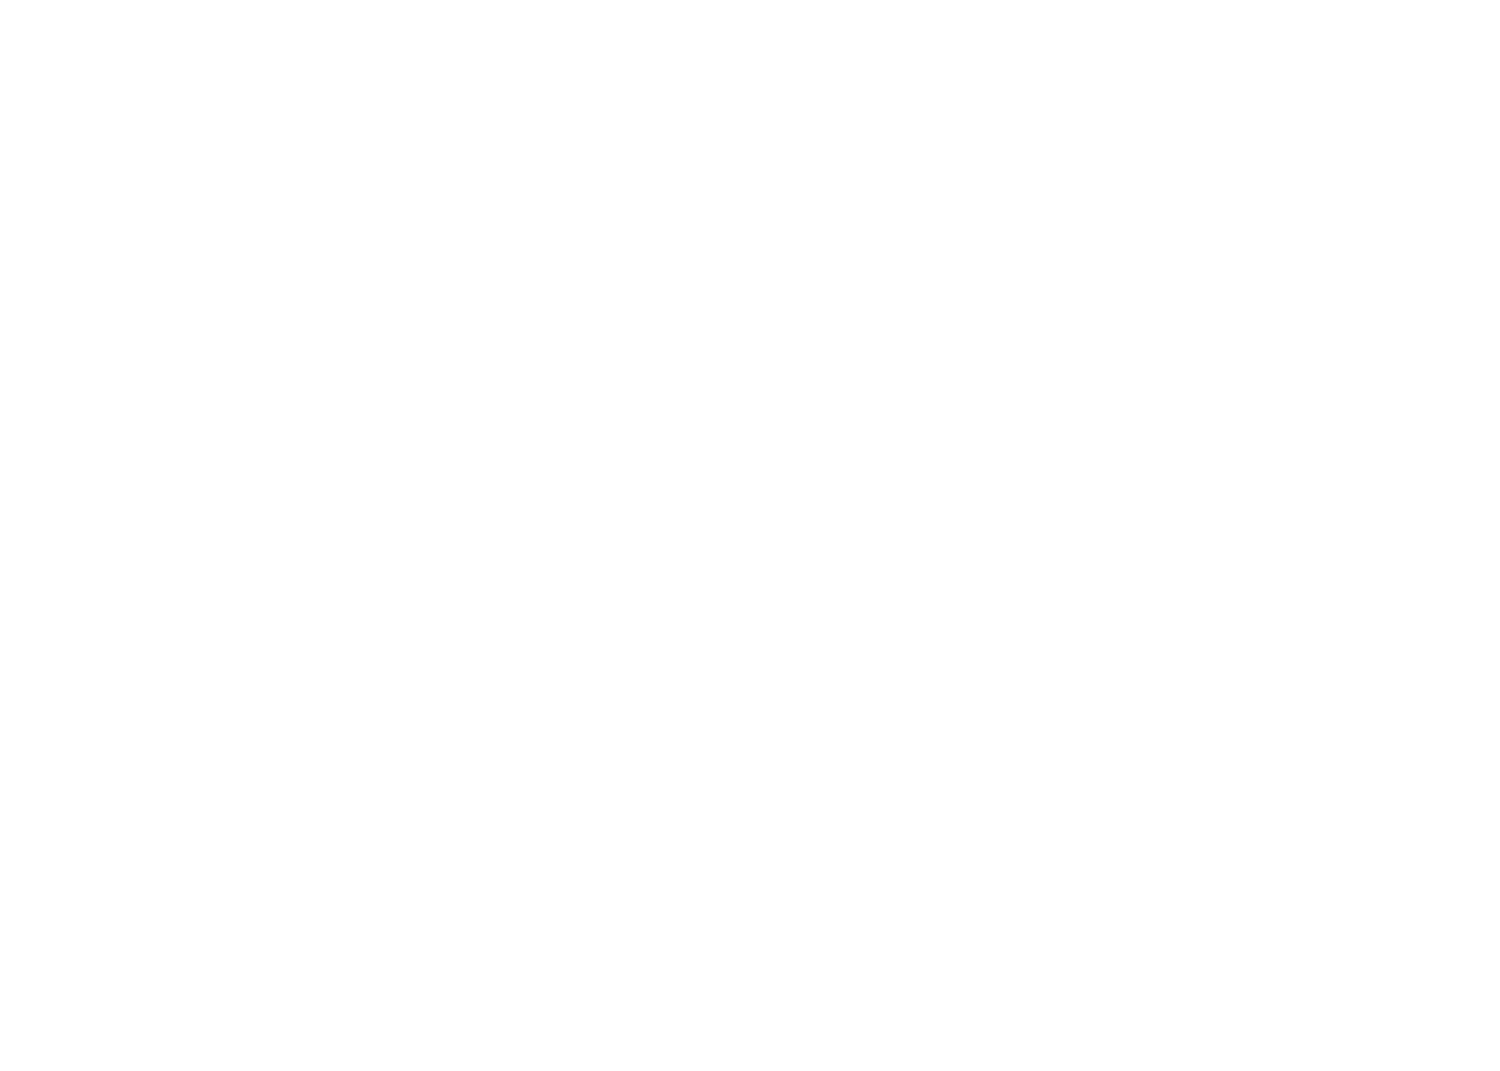 Smiley Eyes Photography